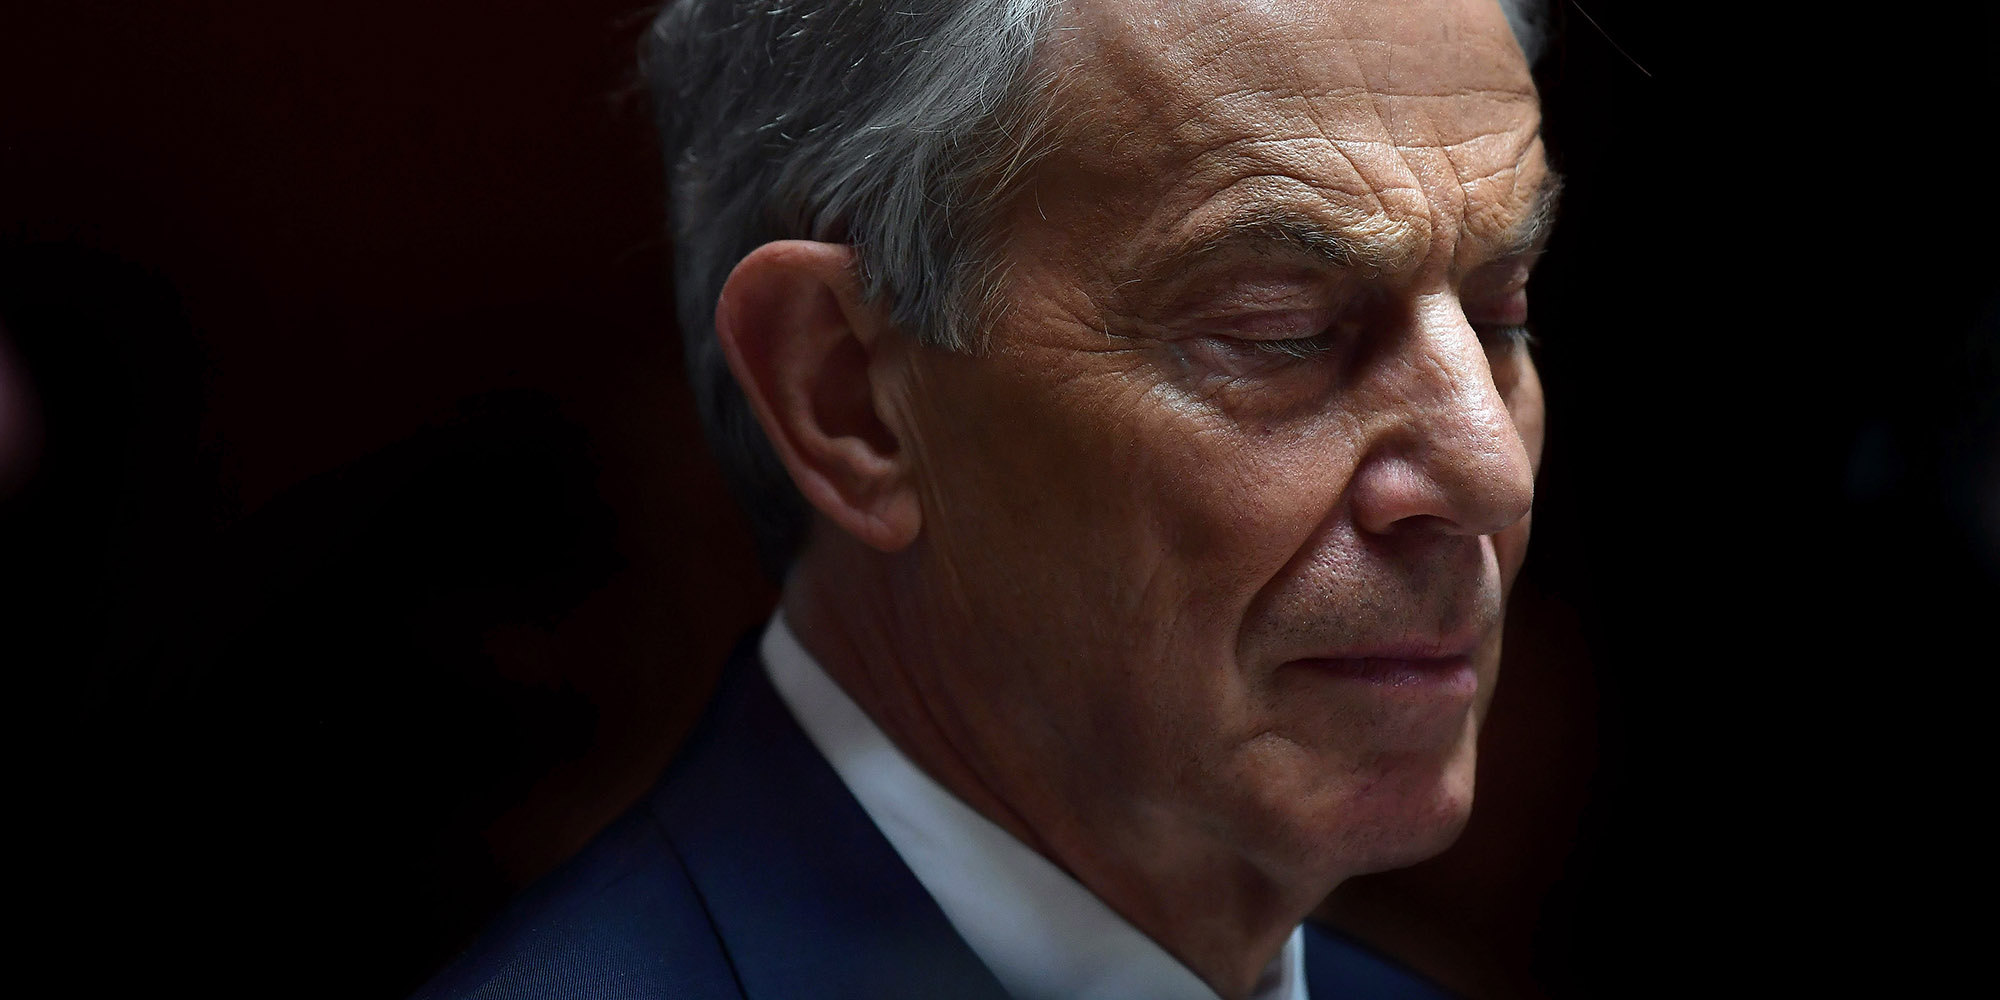 WICKLOW, IRELAND - MAY 12: Former British Prime Minister Tony Blair pauses as he addresses the media after attending the European People's Party (EPP) Group Bureau meeting at Druids Glen on May 12, 2017 in Wicklow, Ireland. Brexit and negotiating objectives will top the agenda at the meeting alongside the unique circumstances regarding the hard border issue between northern and southern Ireland, the only physical border between the United Kingdom and Europe. Mr Blair has signaled a return to politics in light of the Brexit vote. The meeting also features European Commission Brexit chief negotiator Michel Barnier. (Photo by Charles McQuillan/Getty Images)